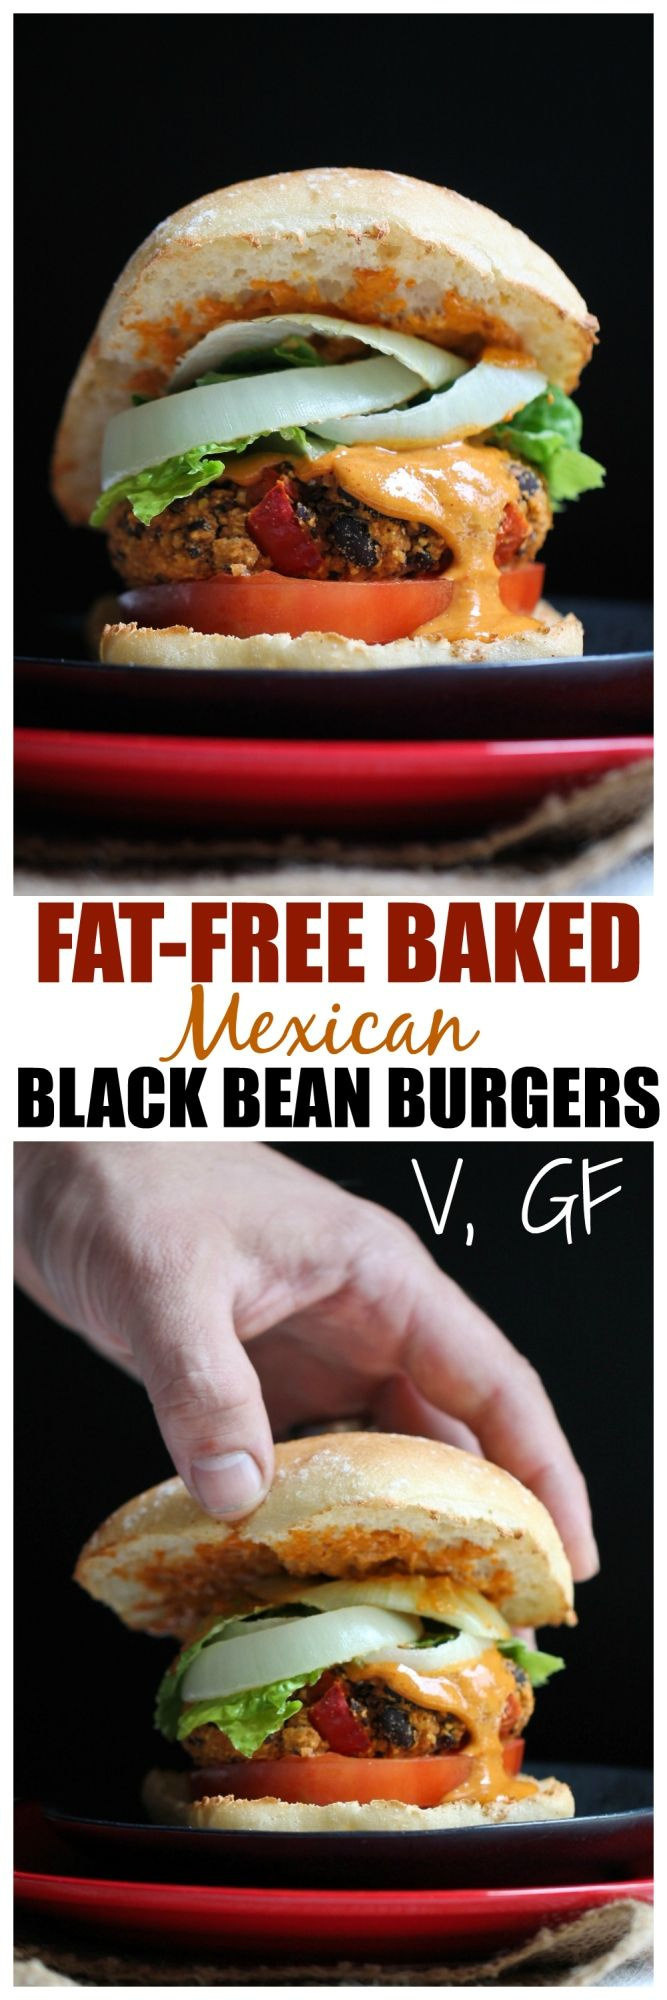 Finallllyyyy a black bean burger that doesn't fall apart, has a nice chew to it and doesn't all squish out from the inside when you take a bite! Do you all know what I'm talking about?? I can't sta...